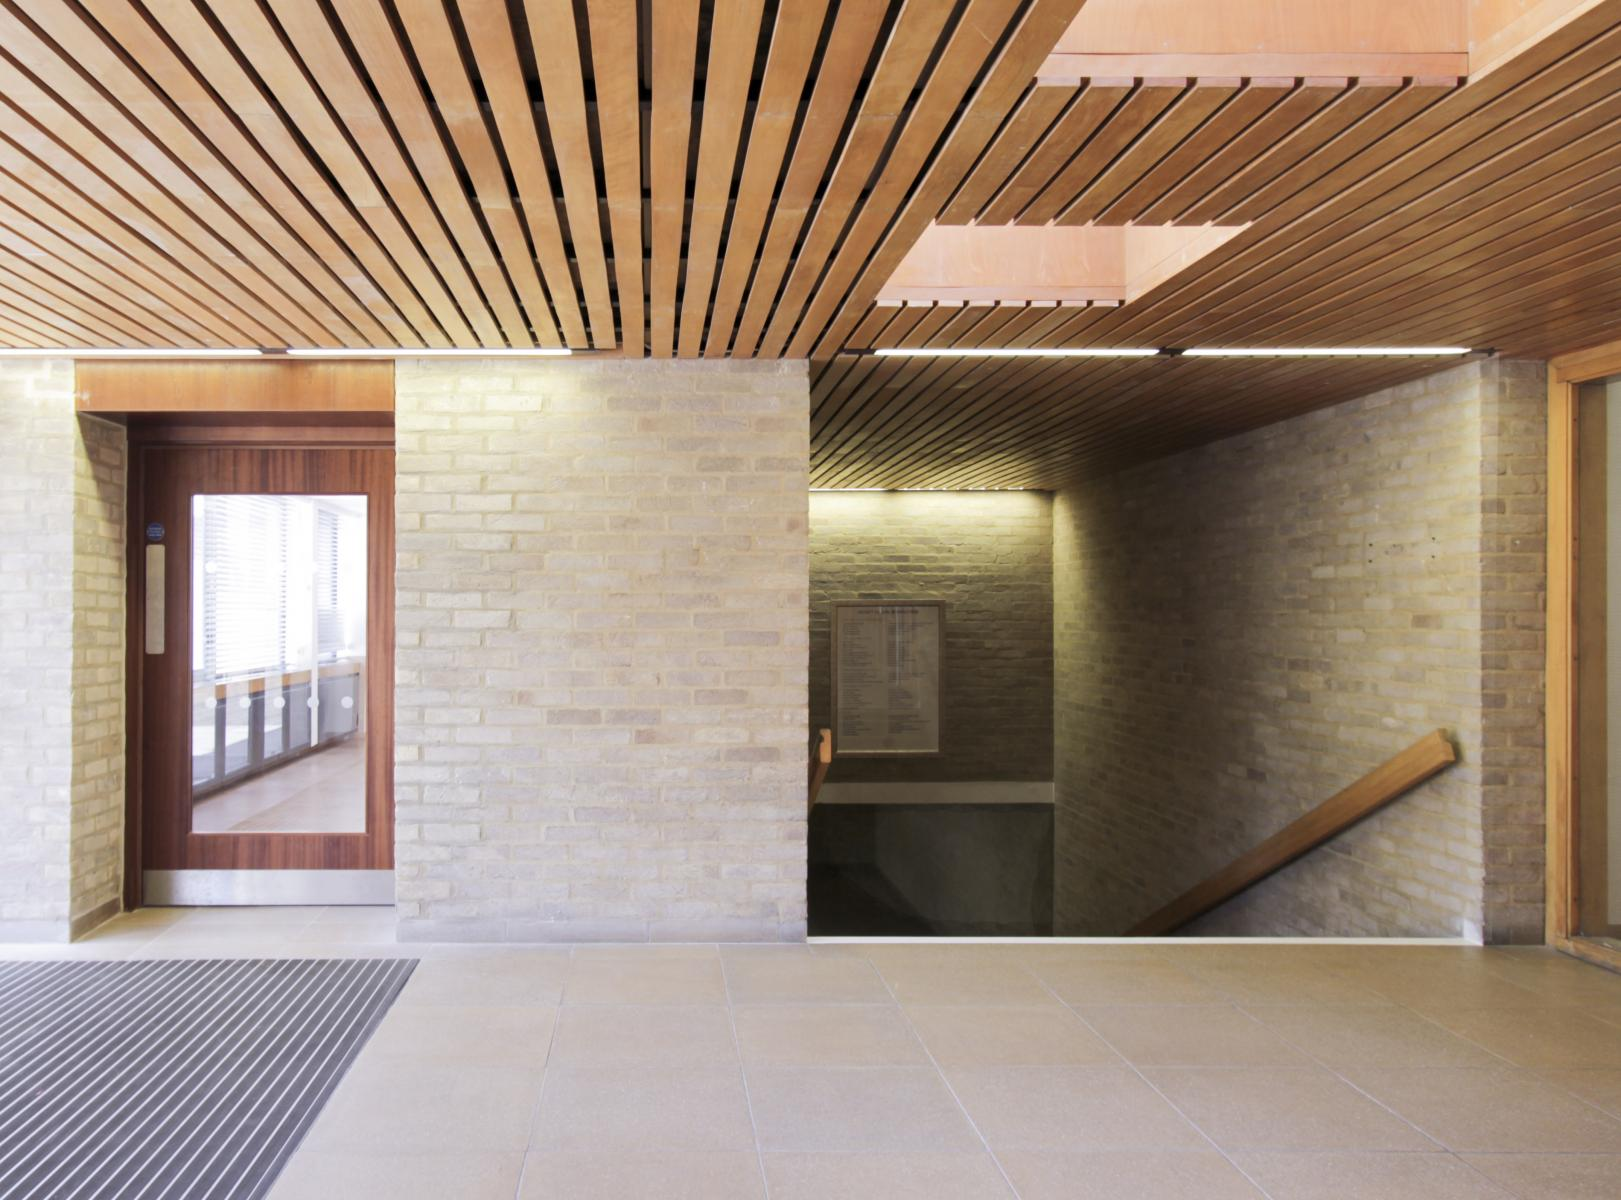 St Cross Building, Oxford, Pringle Richards Sharratt Architects